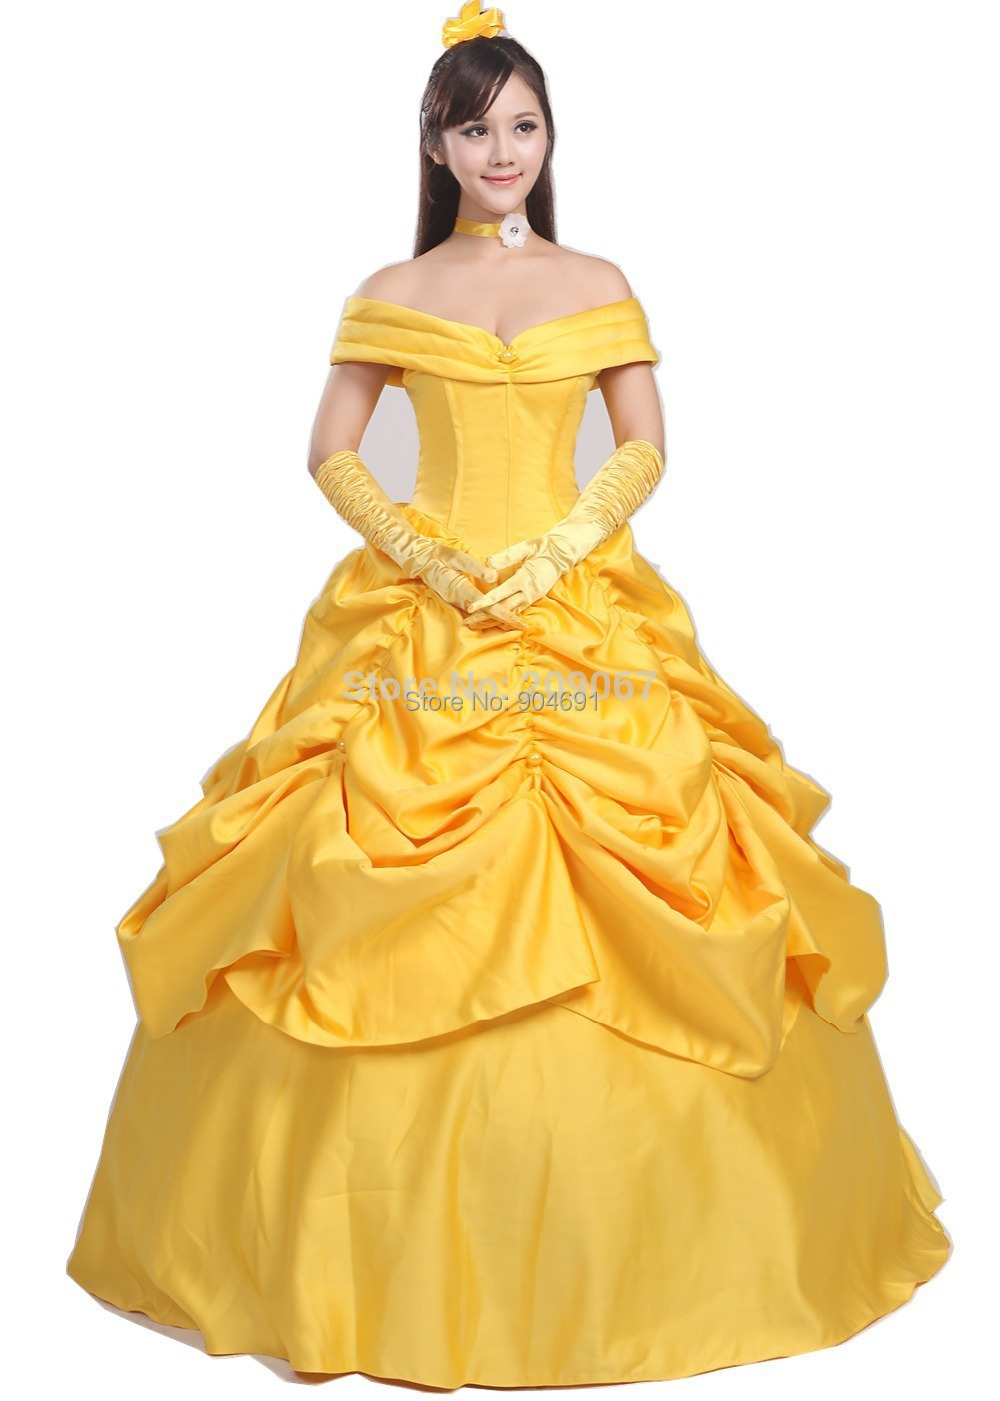 Beauty And The Beast Belle Princess Cosplay Dress Yellow Custom Made Costume For Women Or Girls Customized Dresses In Lolita From Novelty